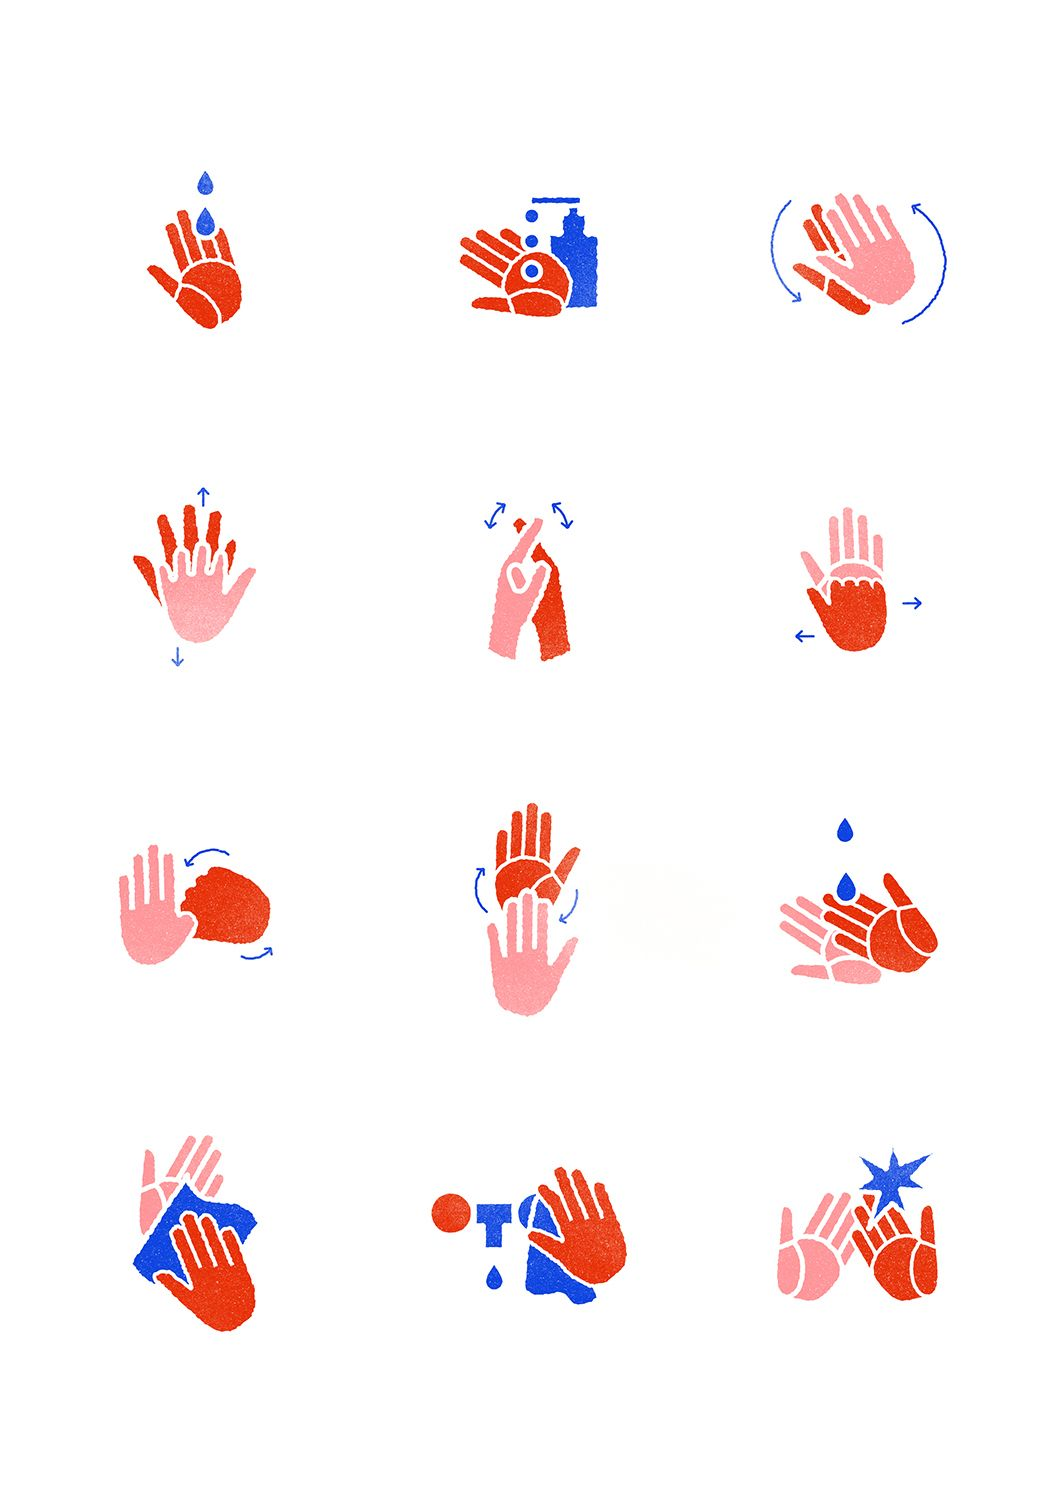 Hand Washing Instructions On Behance Agafranke Ilustracje